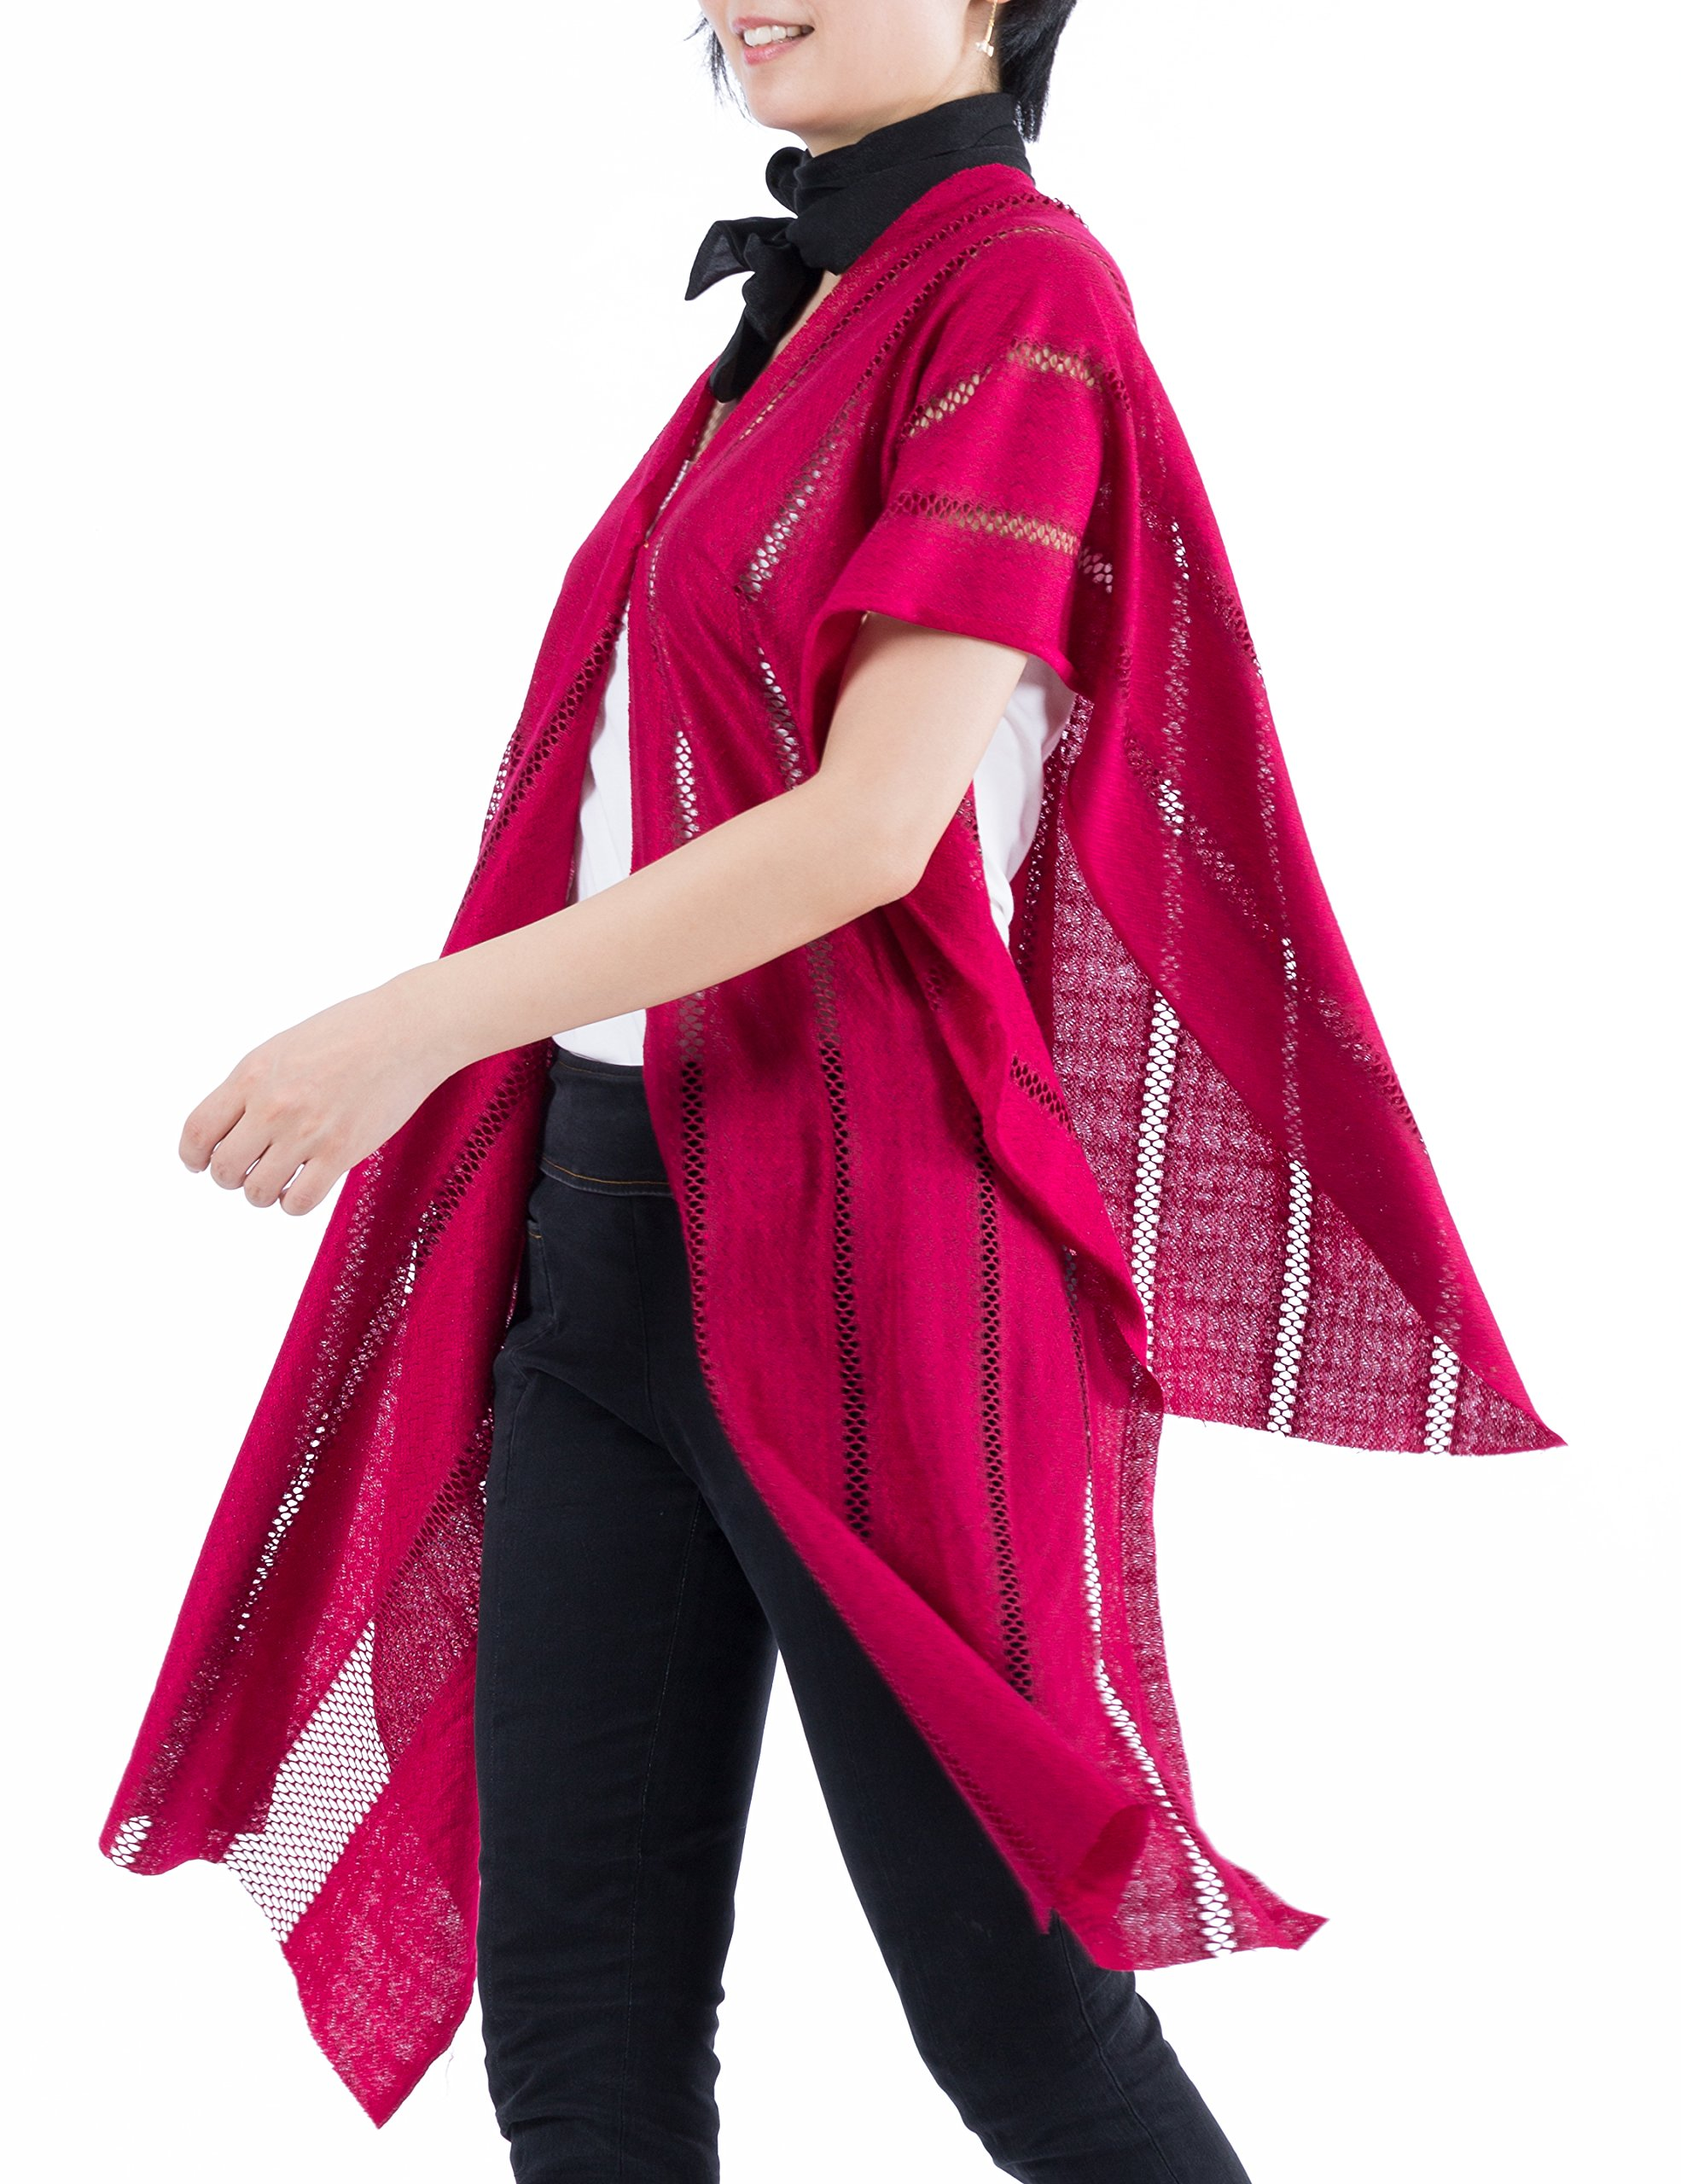 Red Shawl Wrap, Lightweight Long Scarf, Open Front Cardigan, Women Cover Up